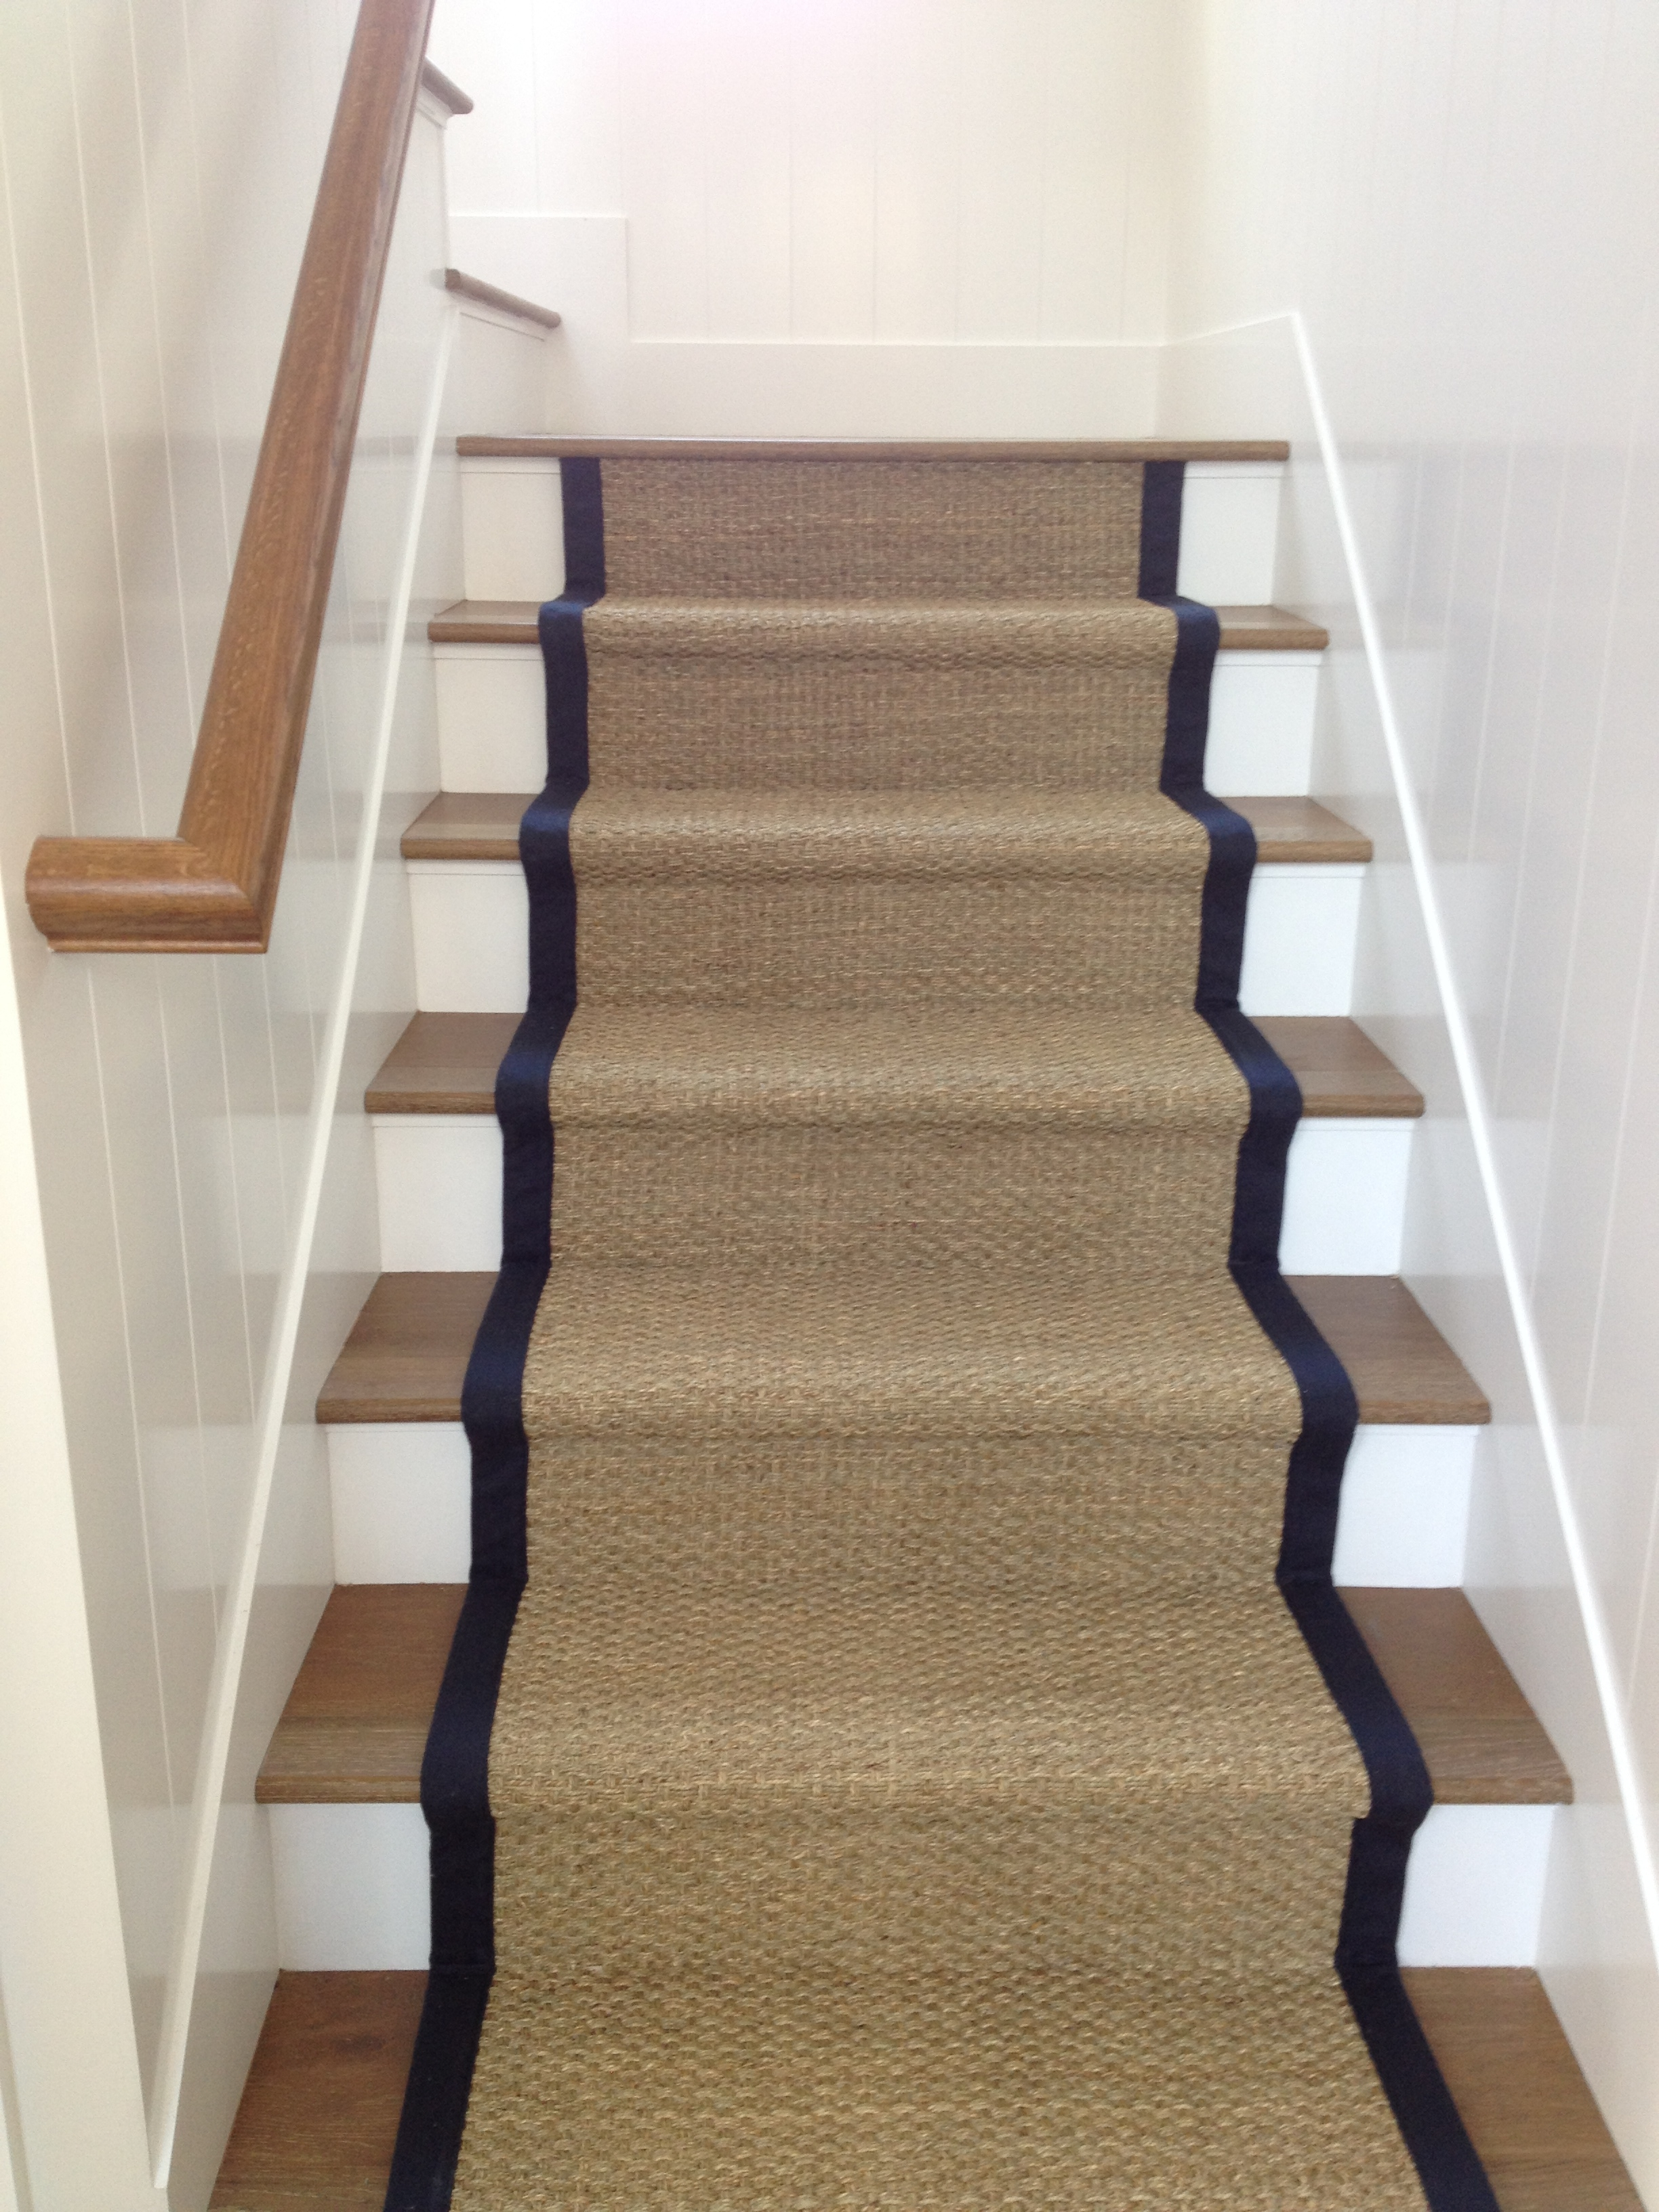 Seagrass Stair Runner With Microfiber Binding Hemphill S Rugs | Seagrass Carpet On Stairs | Gray Wood | Hard Wearing | Grey | Stair Malay Chen Sisal | 80 20 Wool Carpet Stair